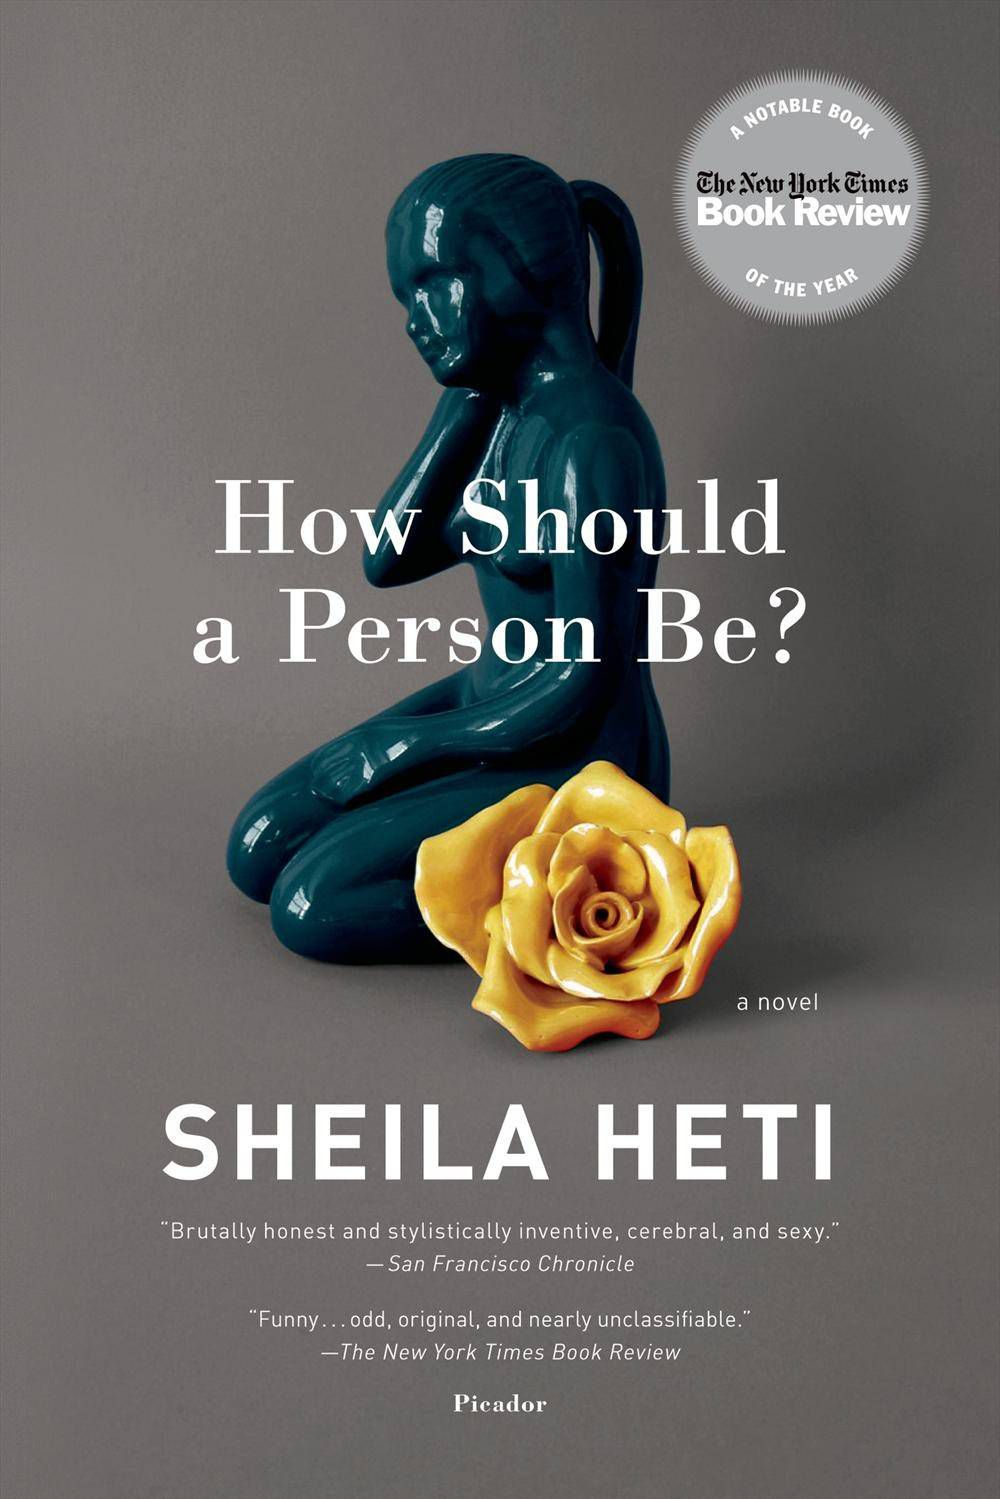 How Should a Person Be Sheila Heti Cover.jpg.optimal